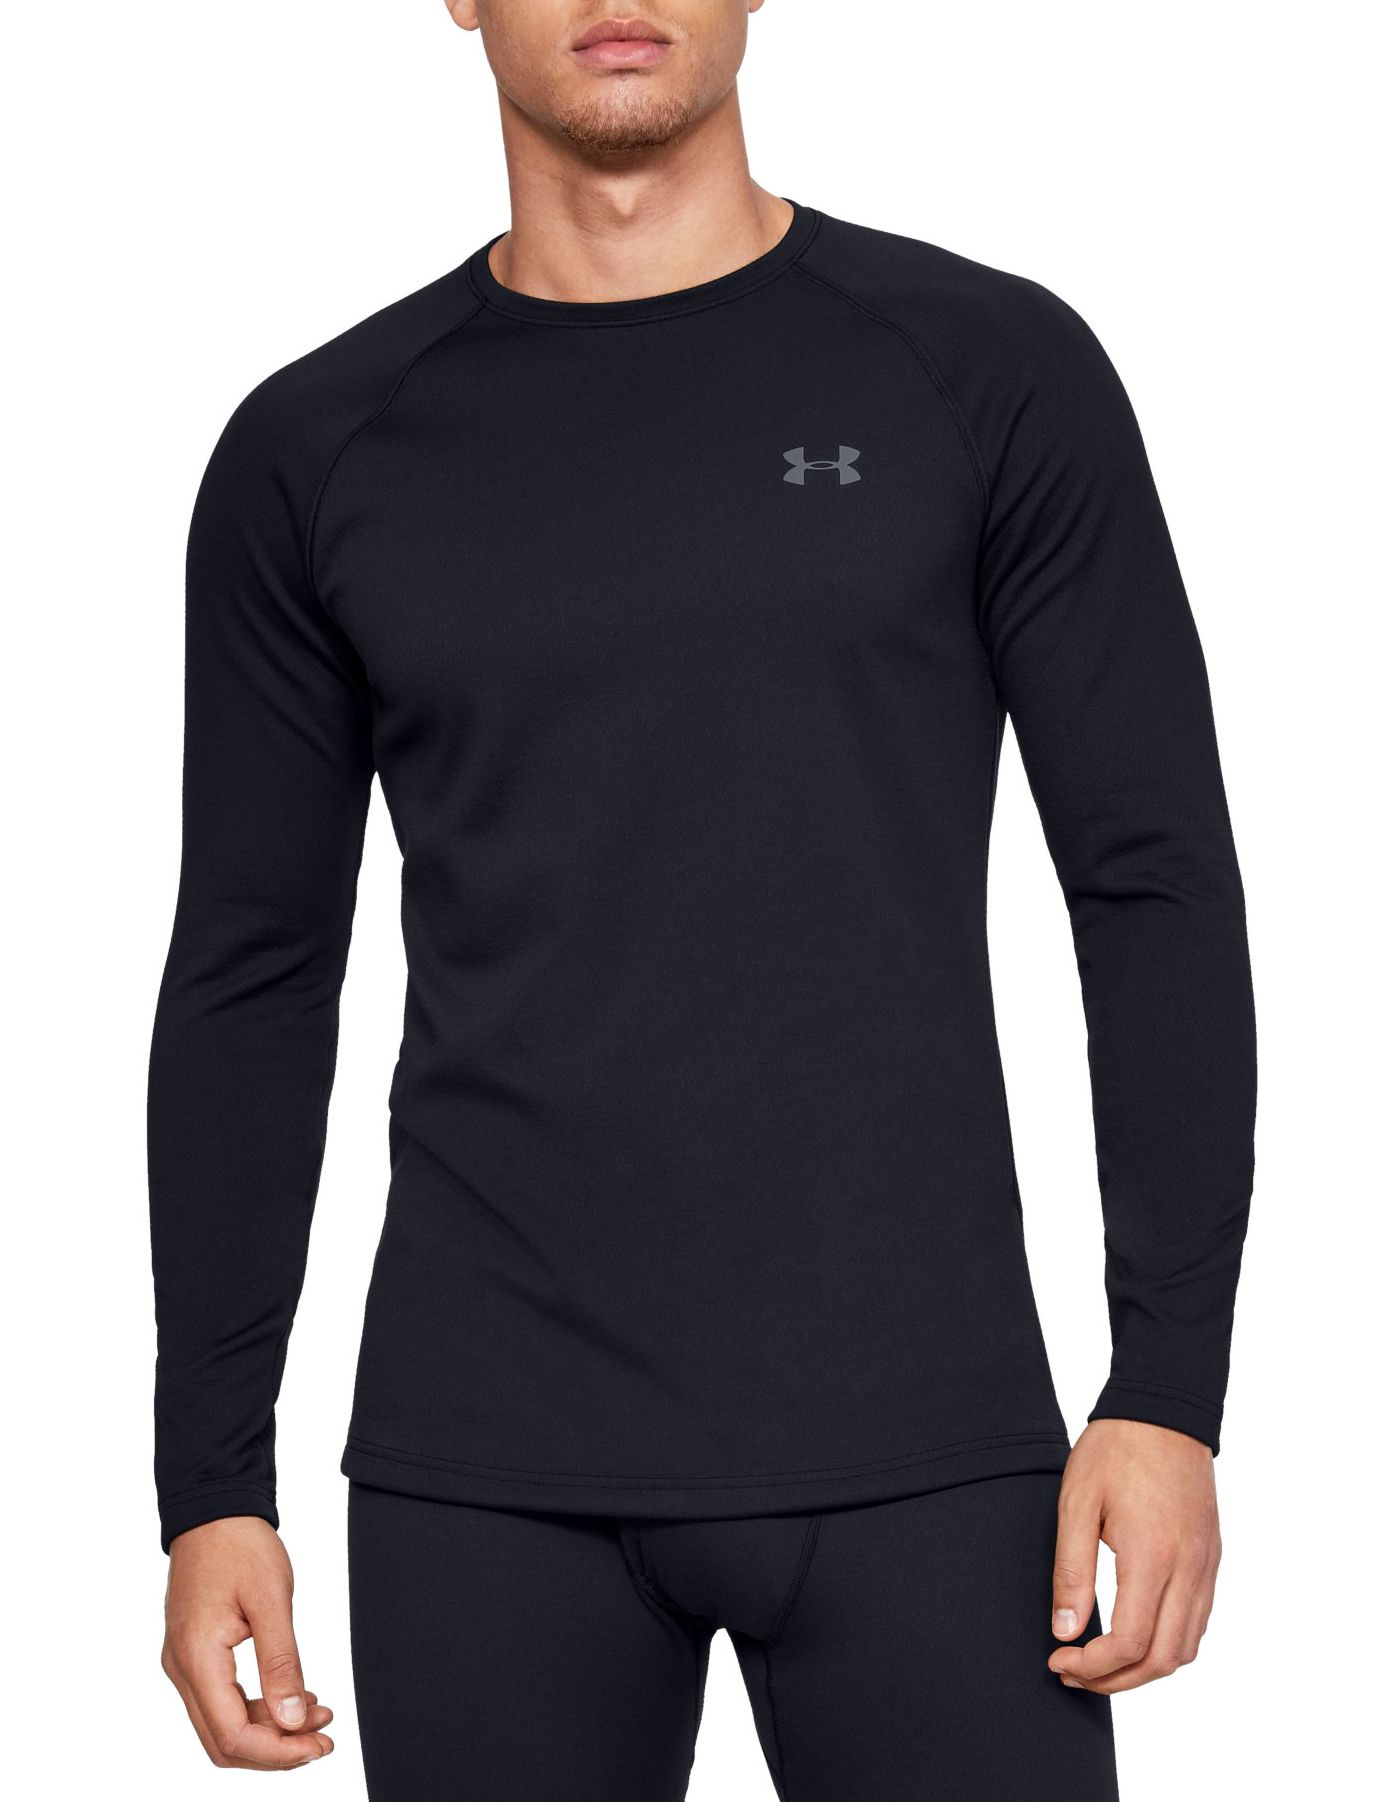 Under Armour Men's Packaged Base 3.0 Crewneck Baselayer (Regular and Big & Tall)